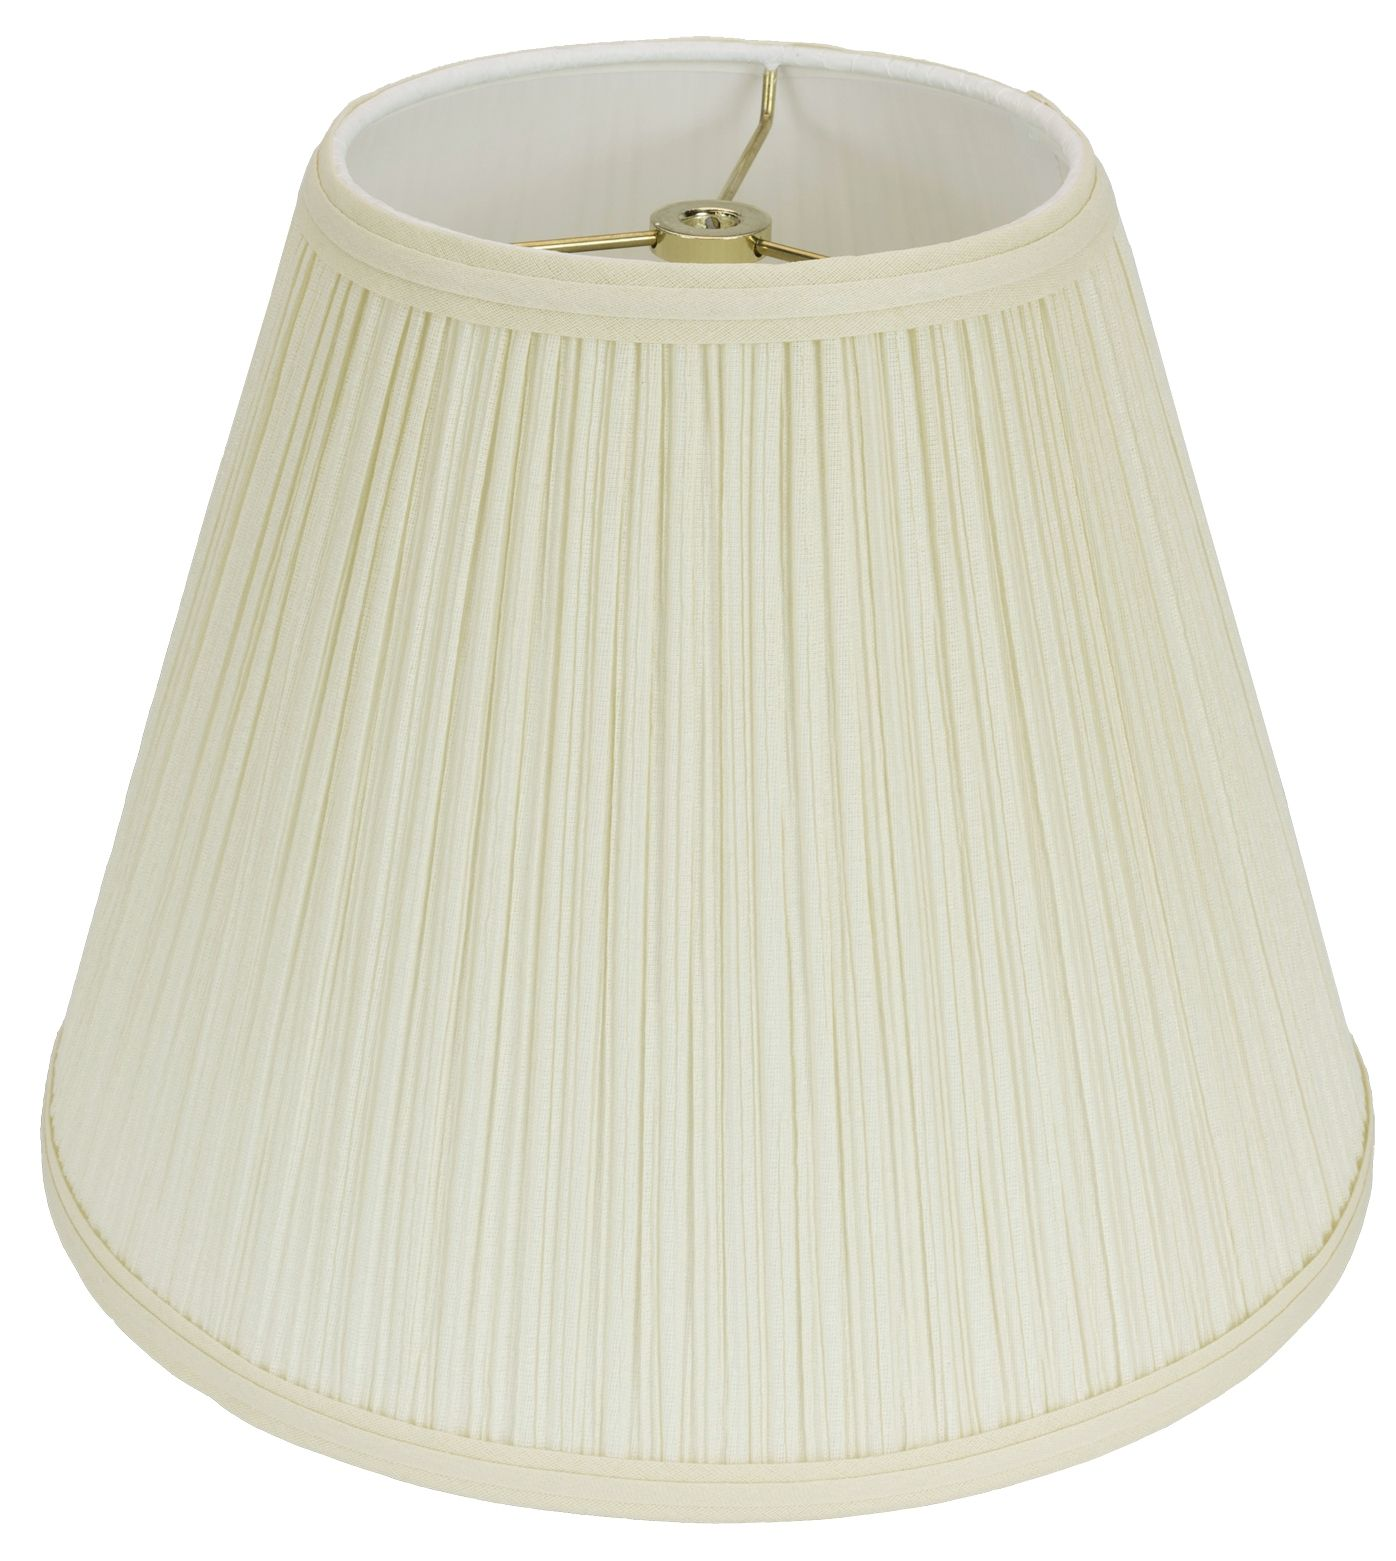 Mushroom Pleated Lamp Shade Cream White 12 20 W With Images Pleated Lamp Shades Lamp Shade Lamp